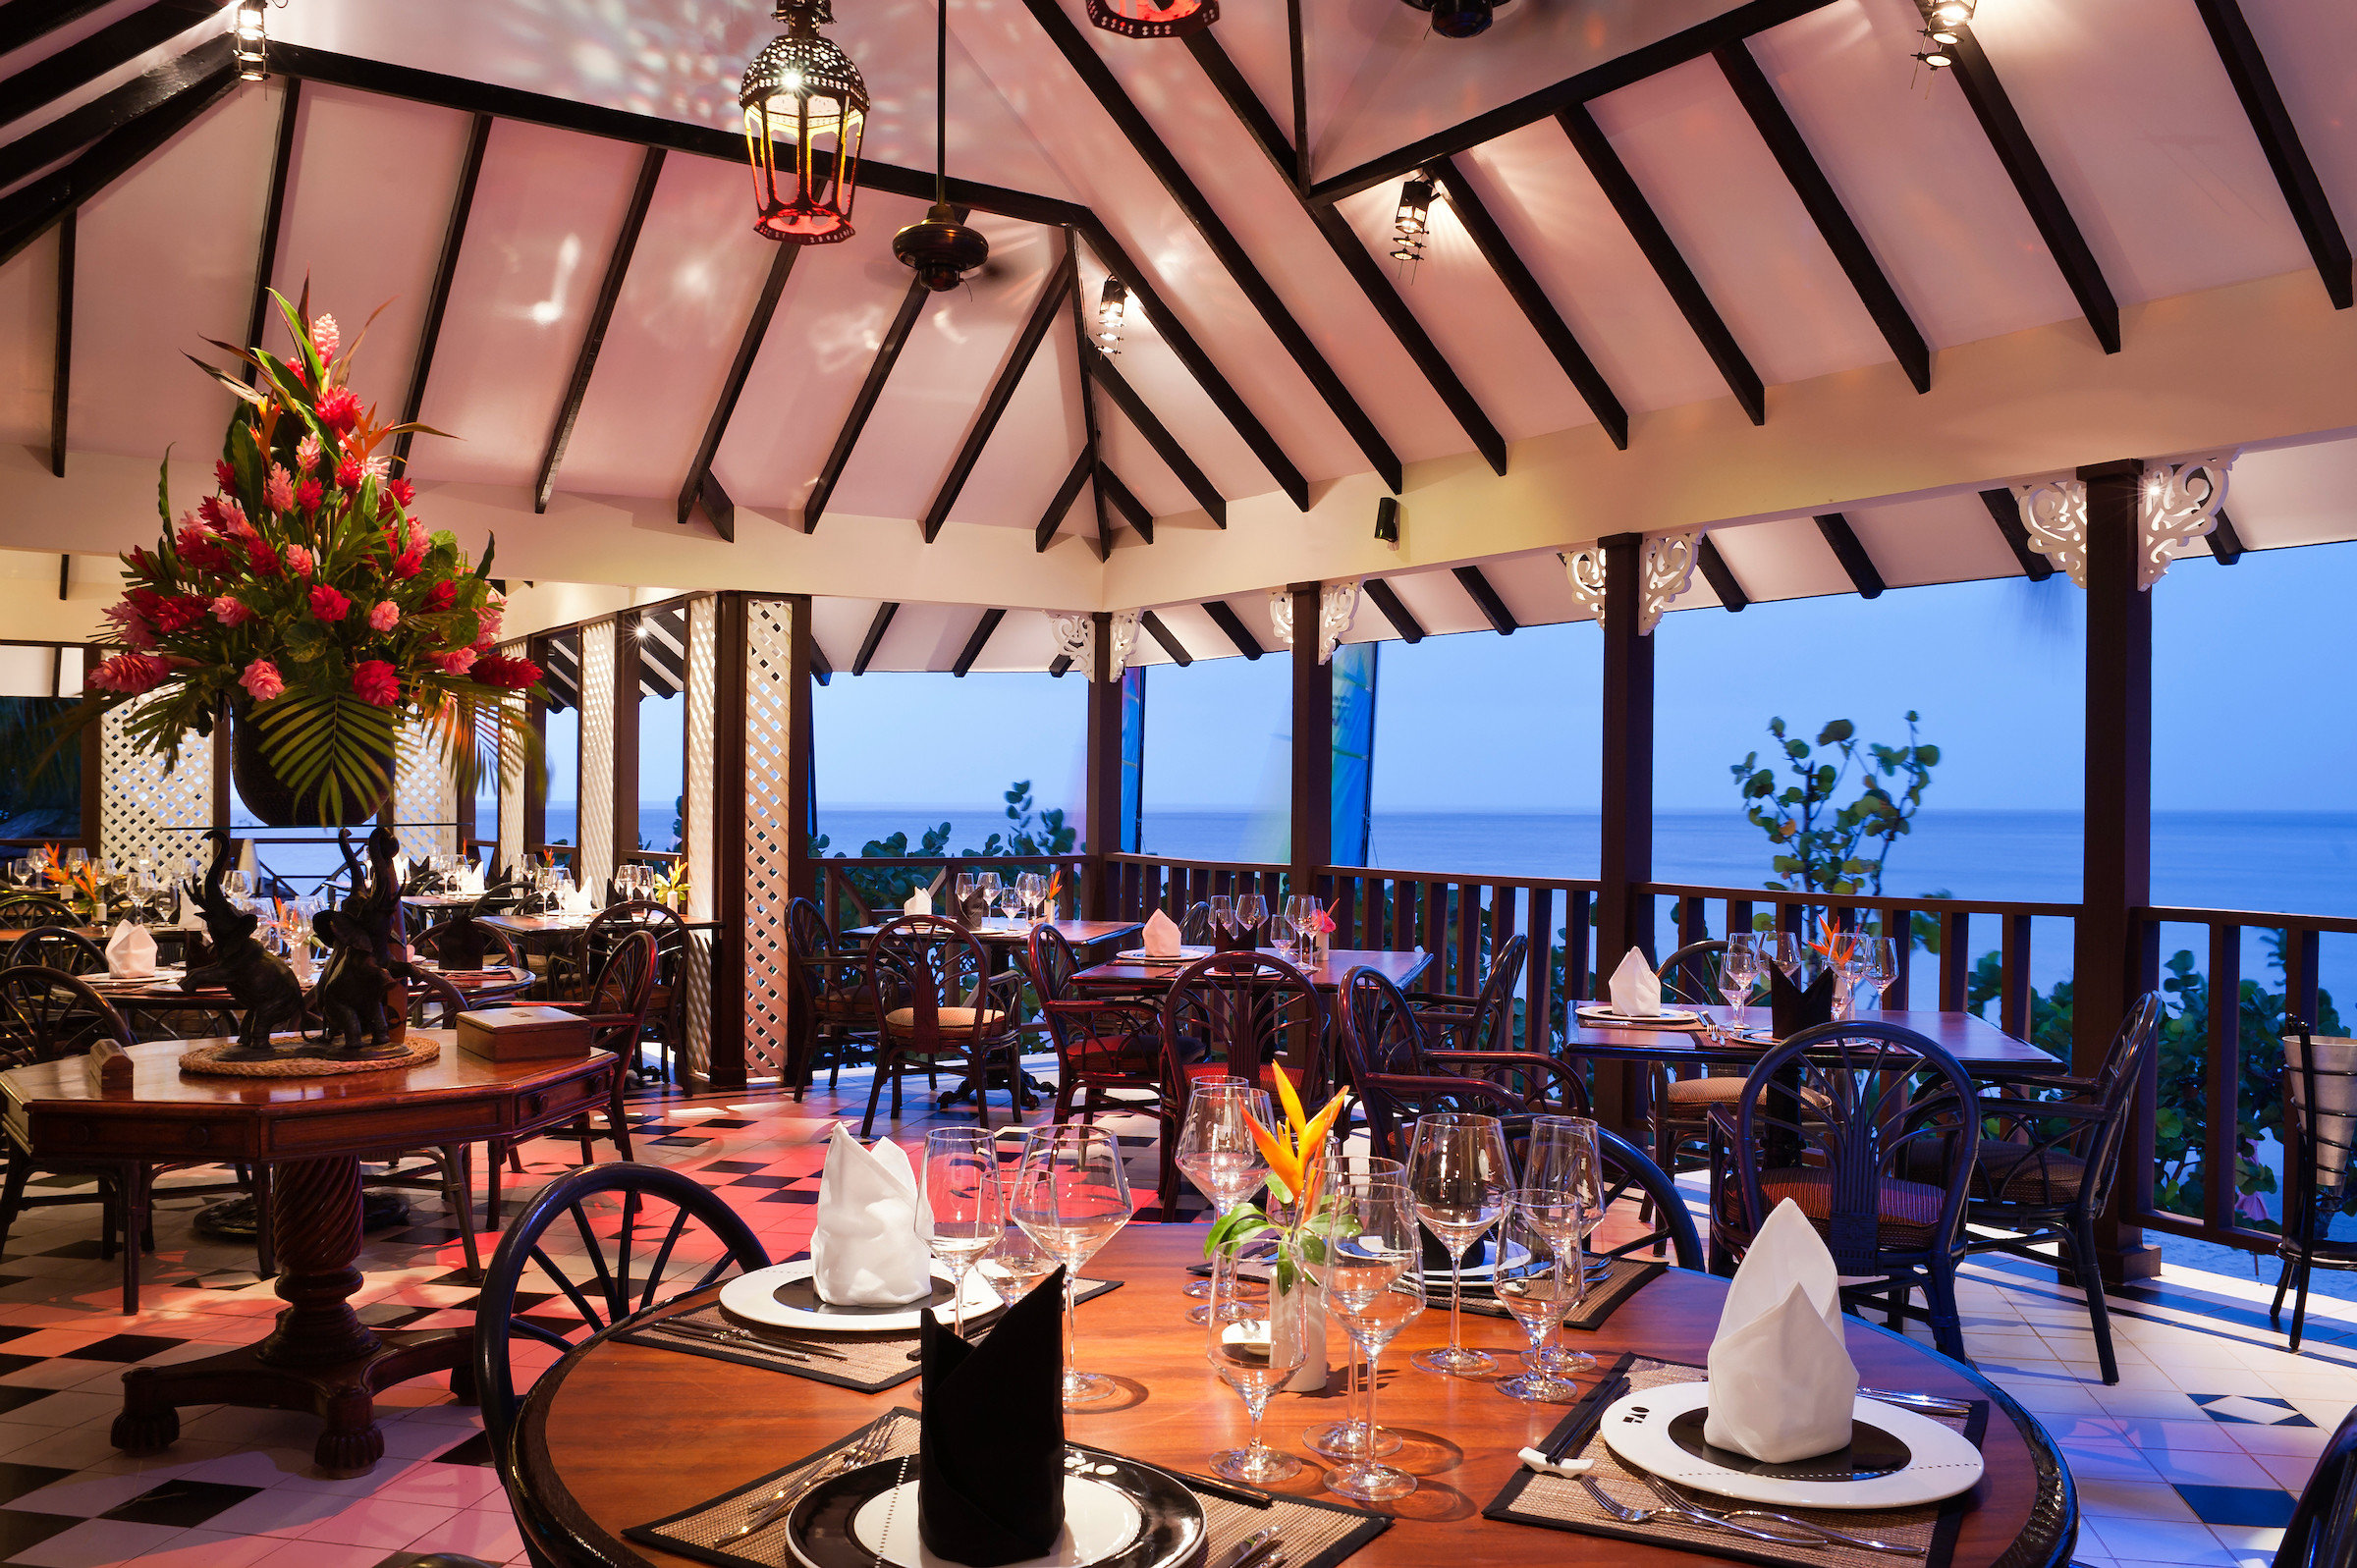 All-Inclusive Resorts caribbean table restaurant function hall Resort leisure Dining tourism vacation ceremony recreation dining room dining table